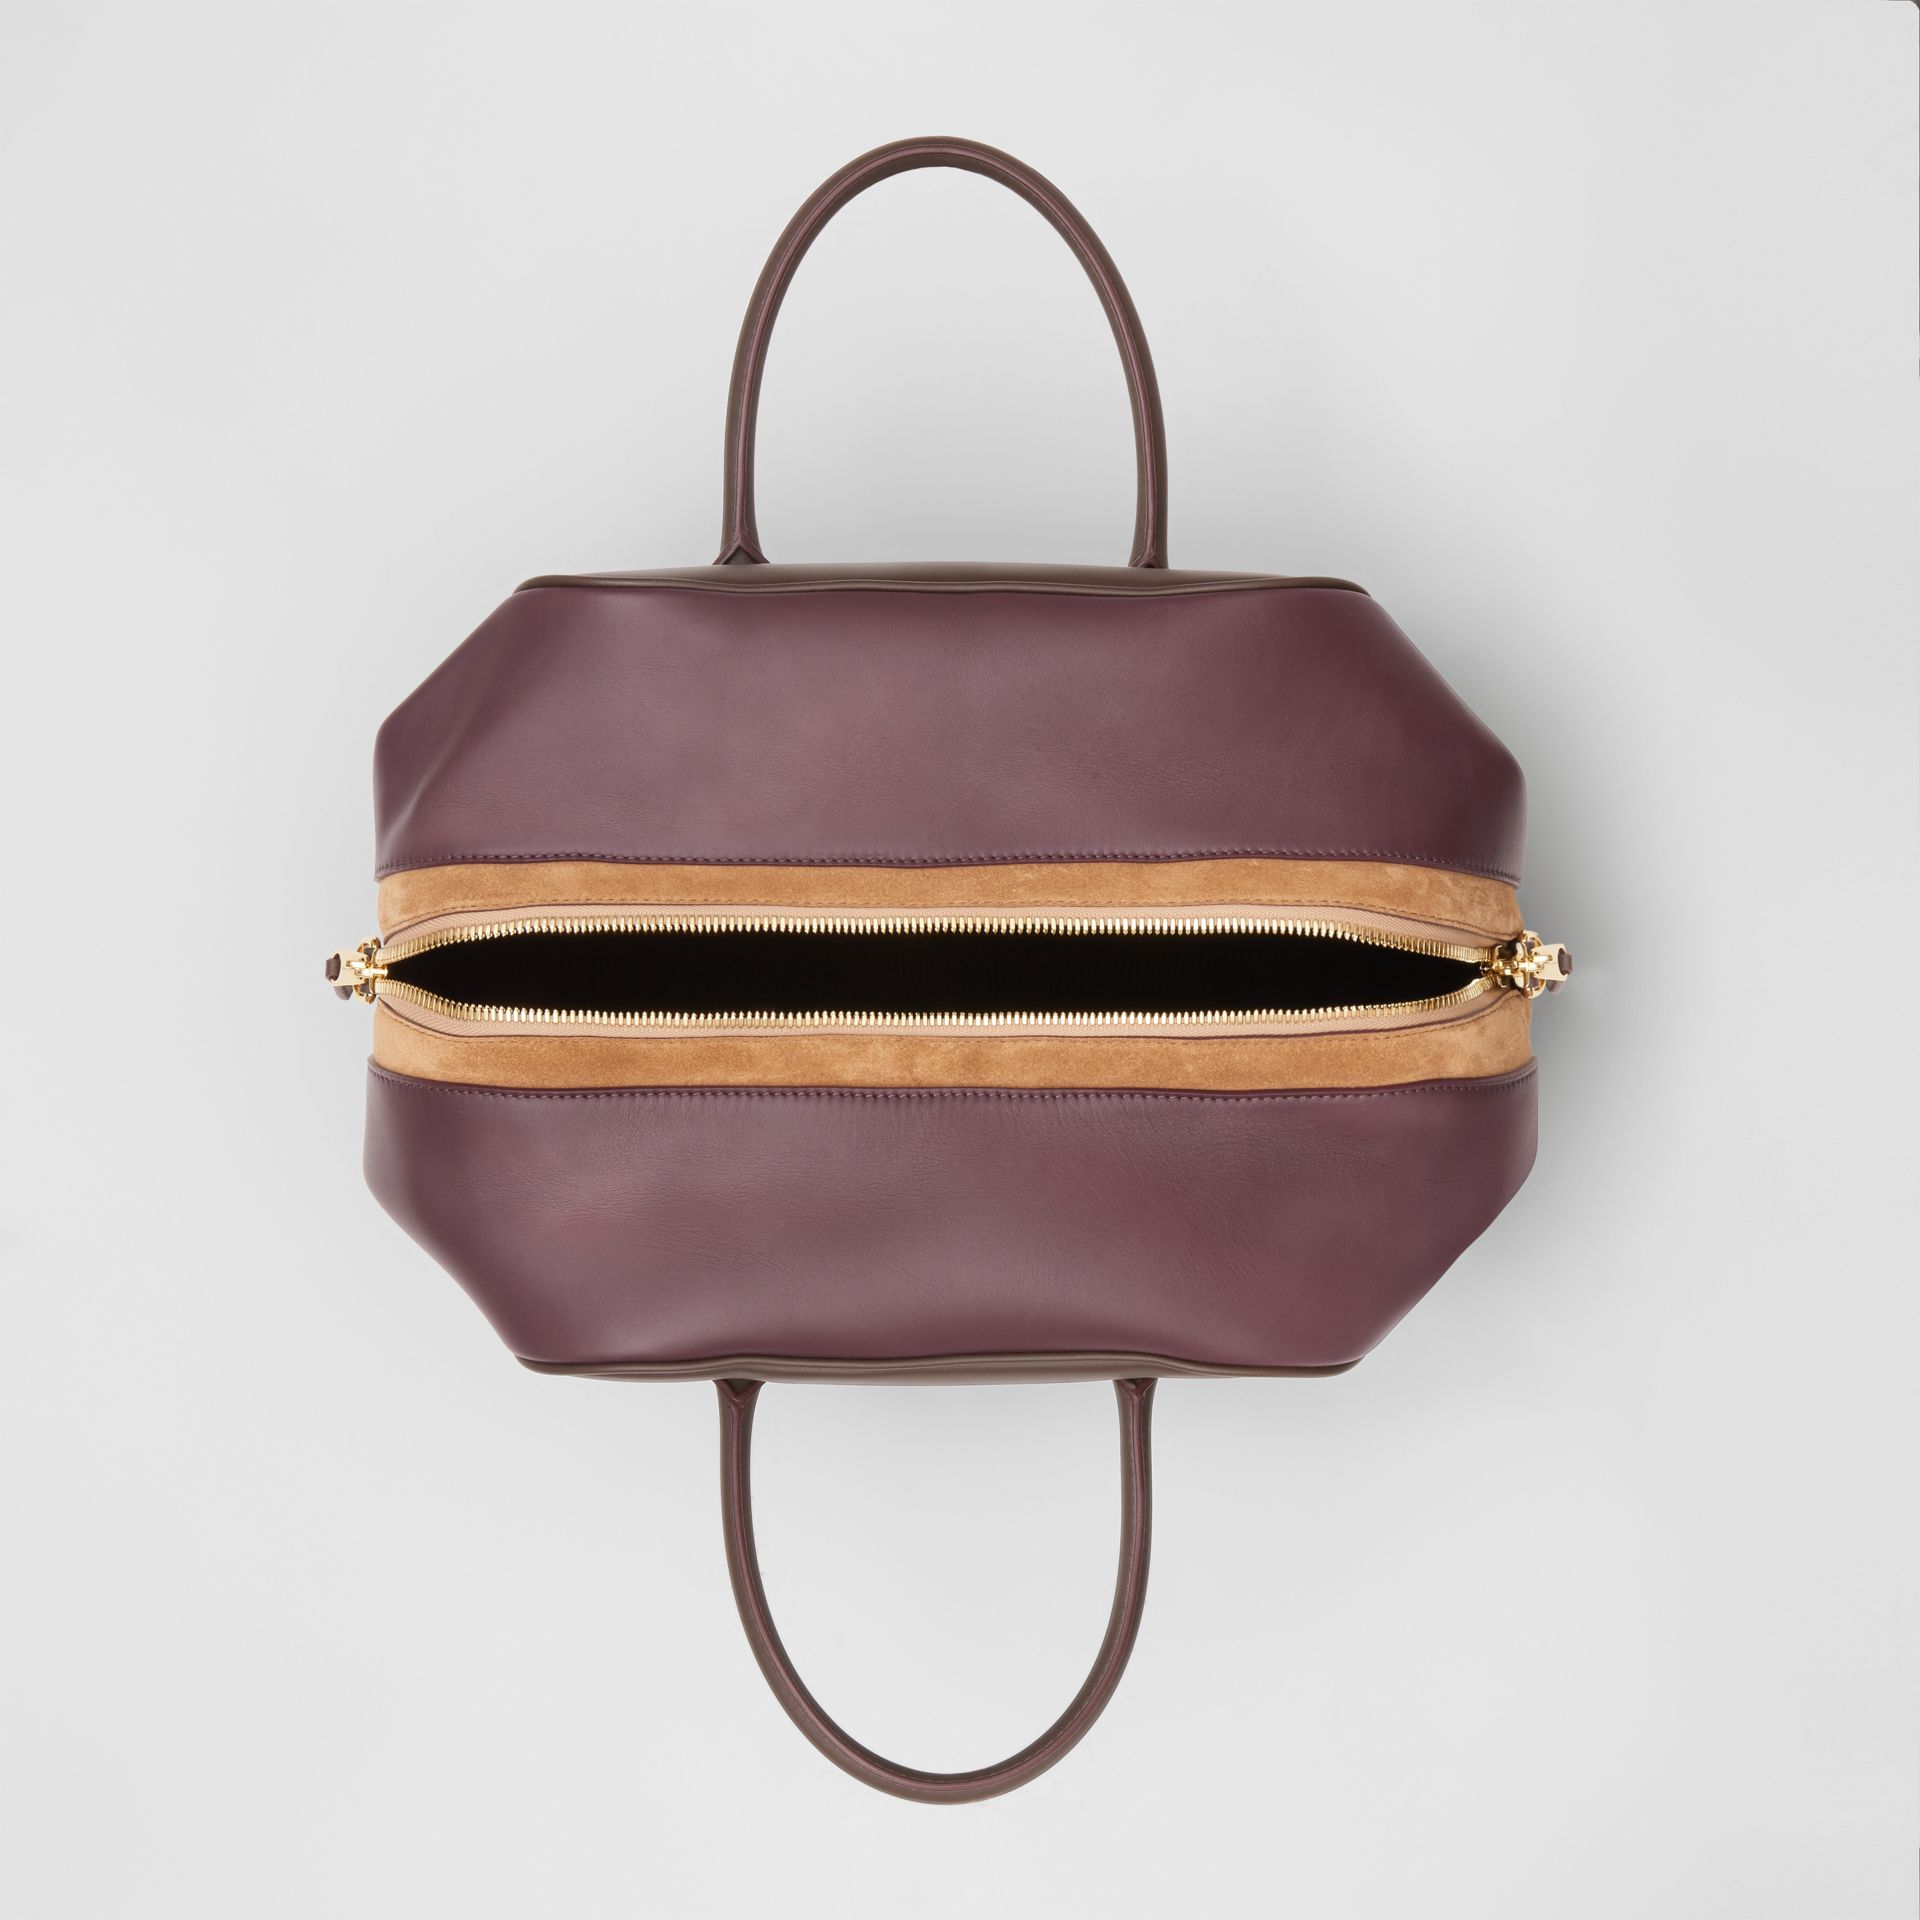 Medium Leather and Suede Cube Bag in Mahogany - Women | Burberry United Kingdom - gallery image 4